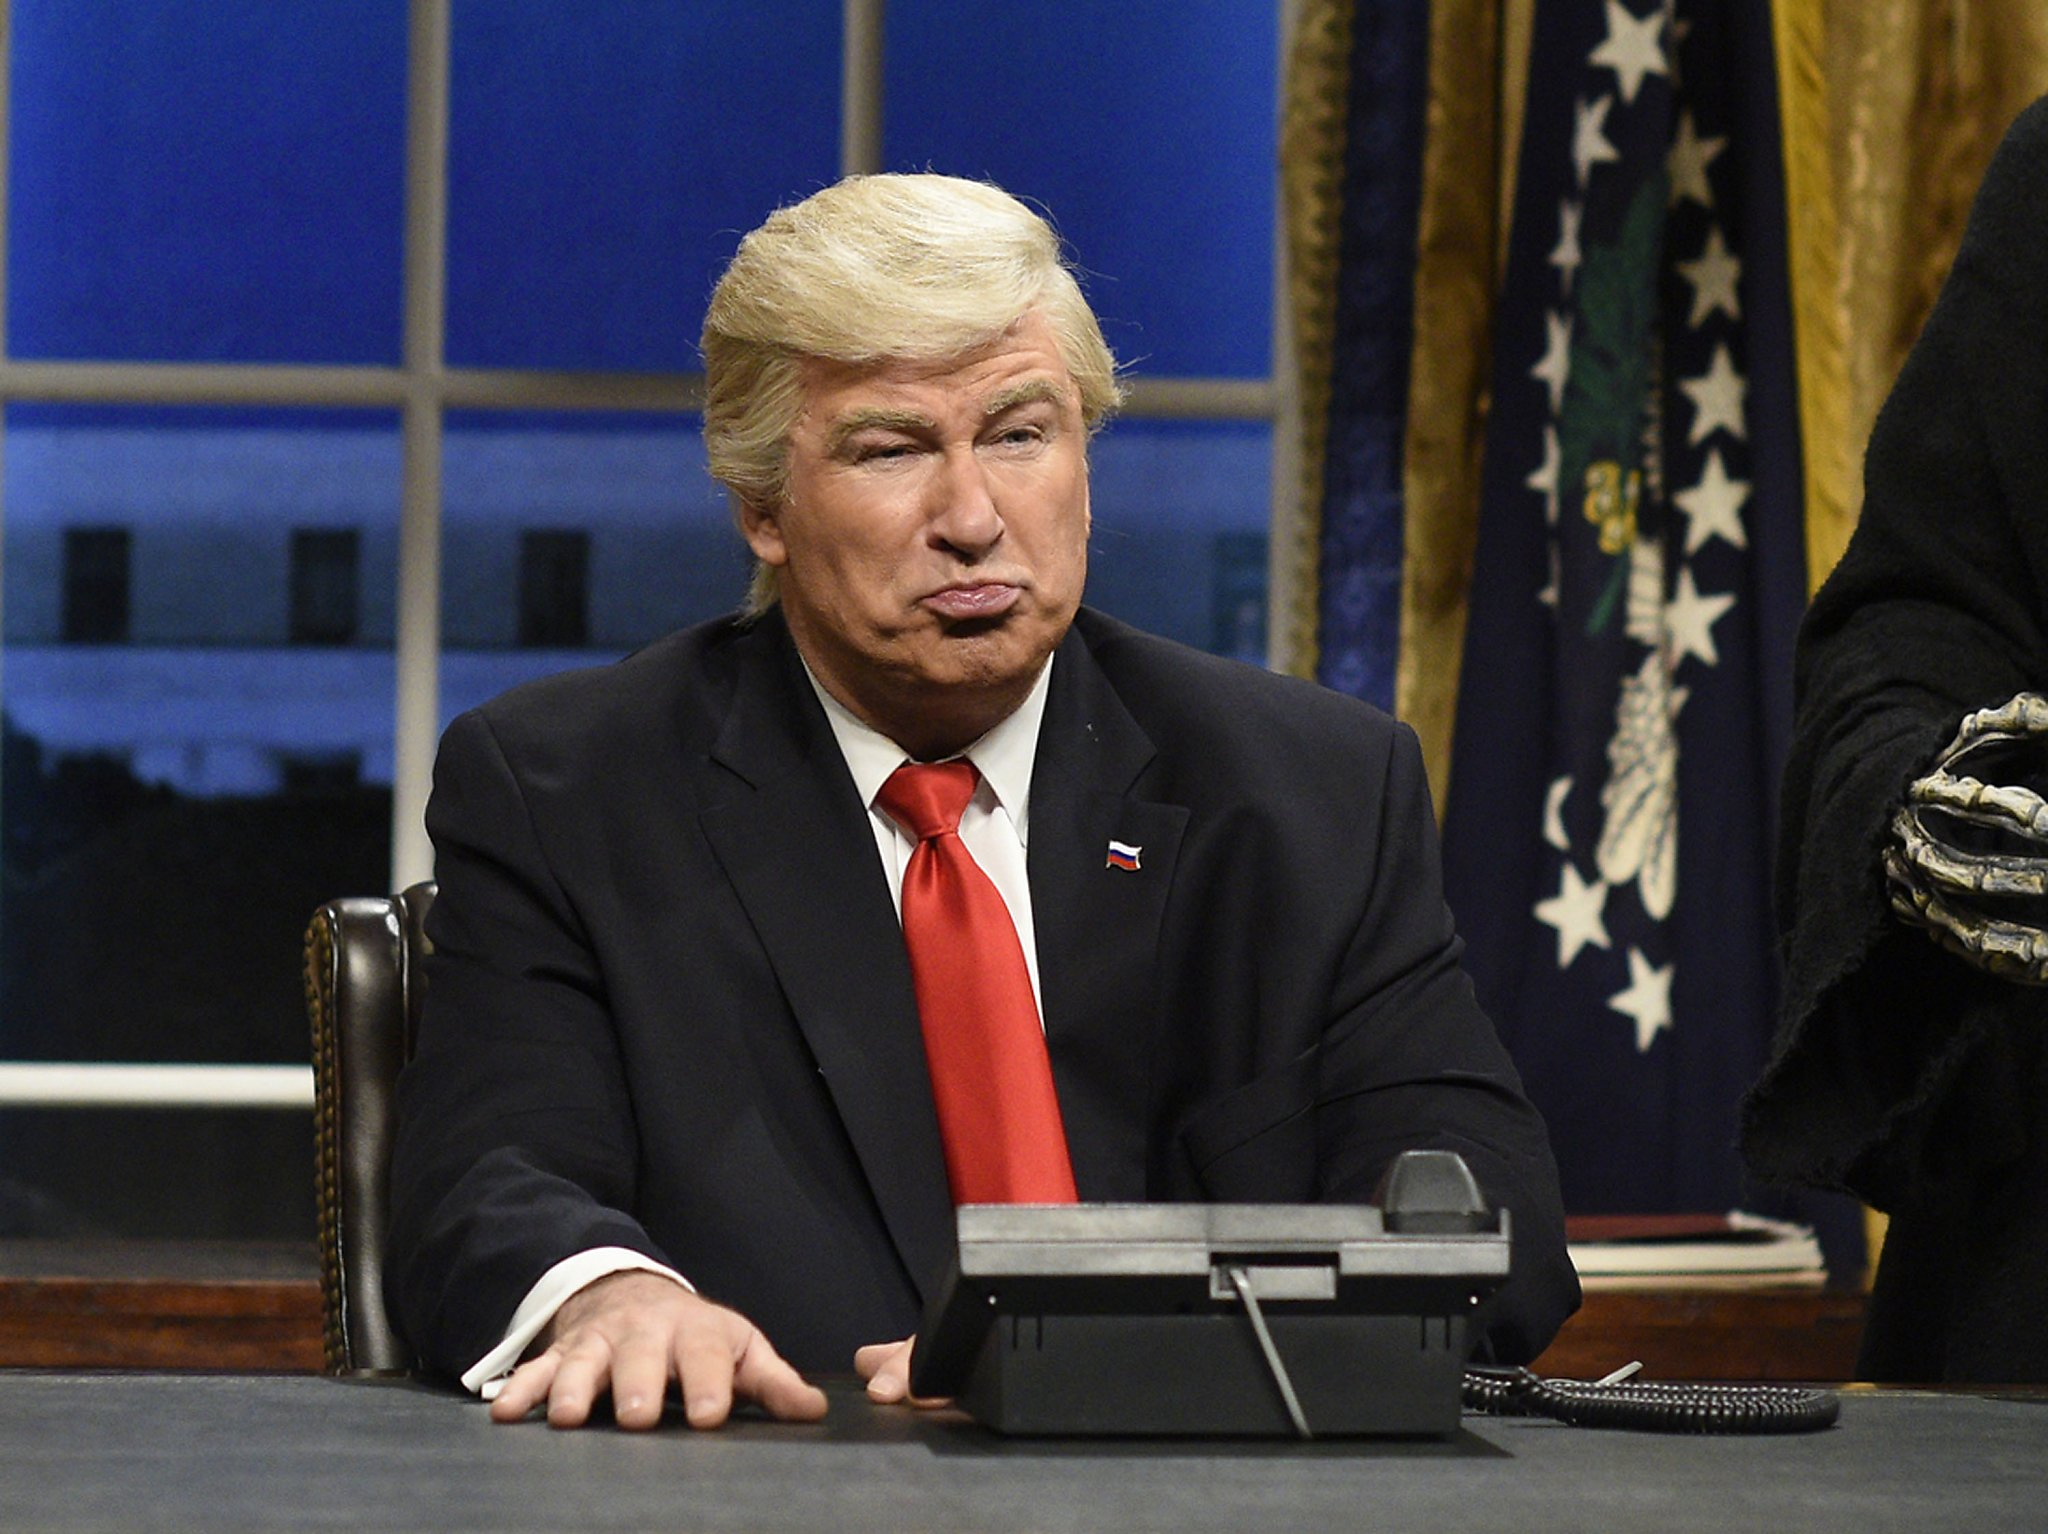 Donald Trump faces ghosts in SNLs Christmas Story sketch Donald Trump faces ghosts in SNLs Christmas Story sketch new pics